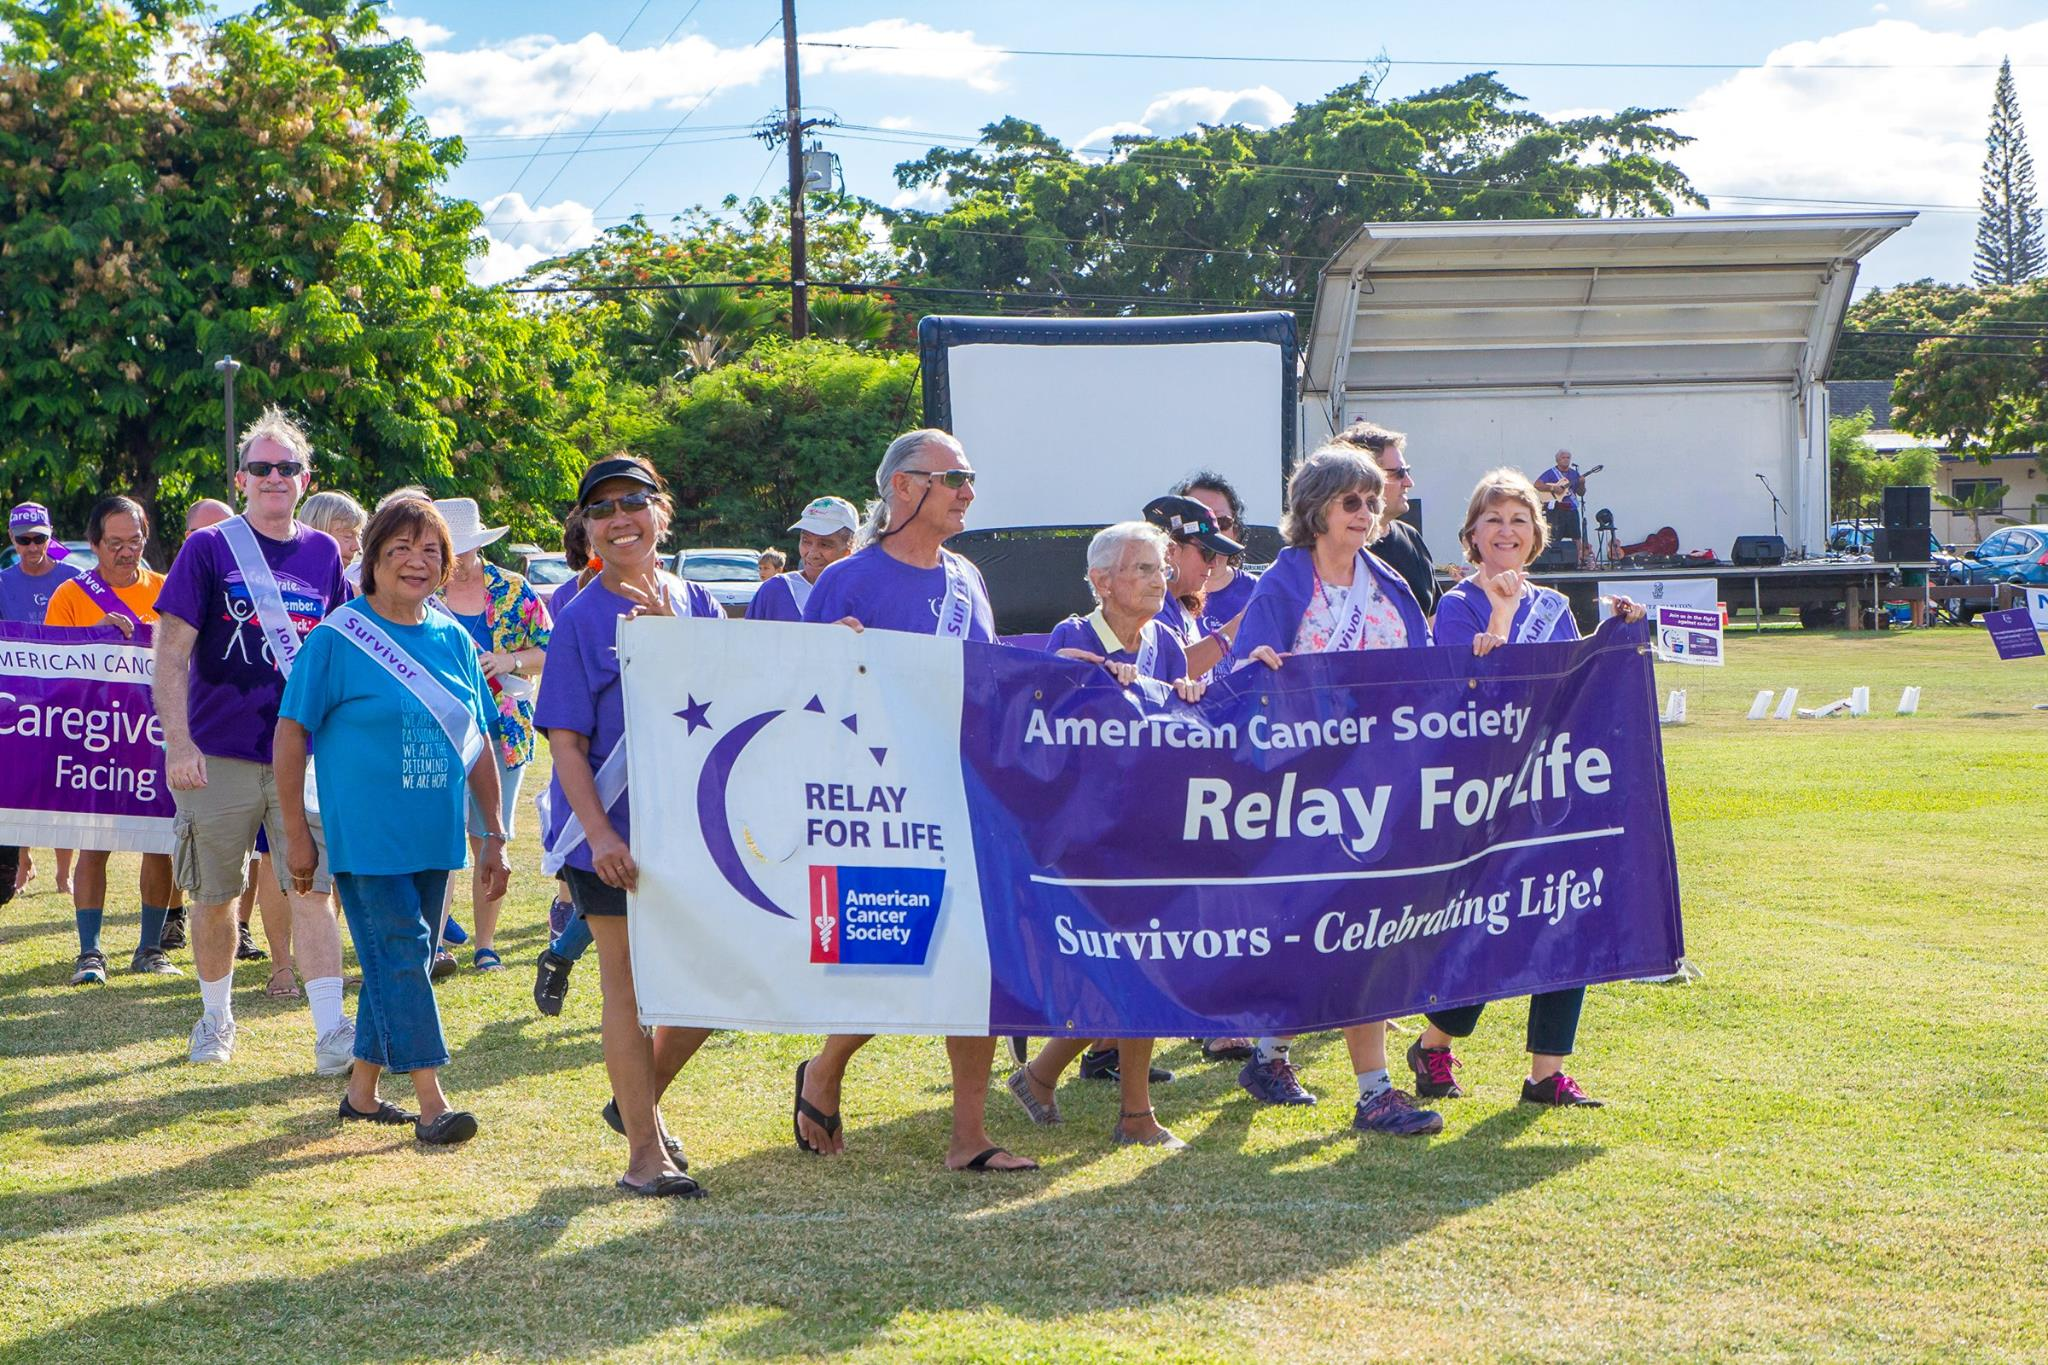 American Cancer Society Relay for Life, July 20